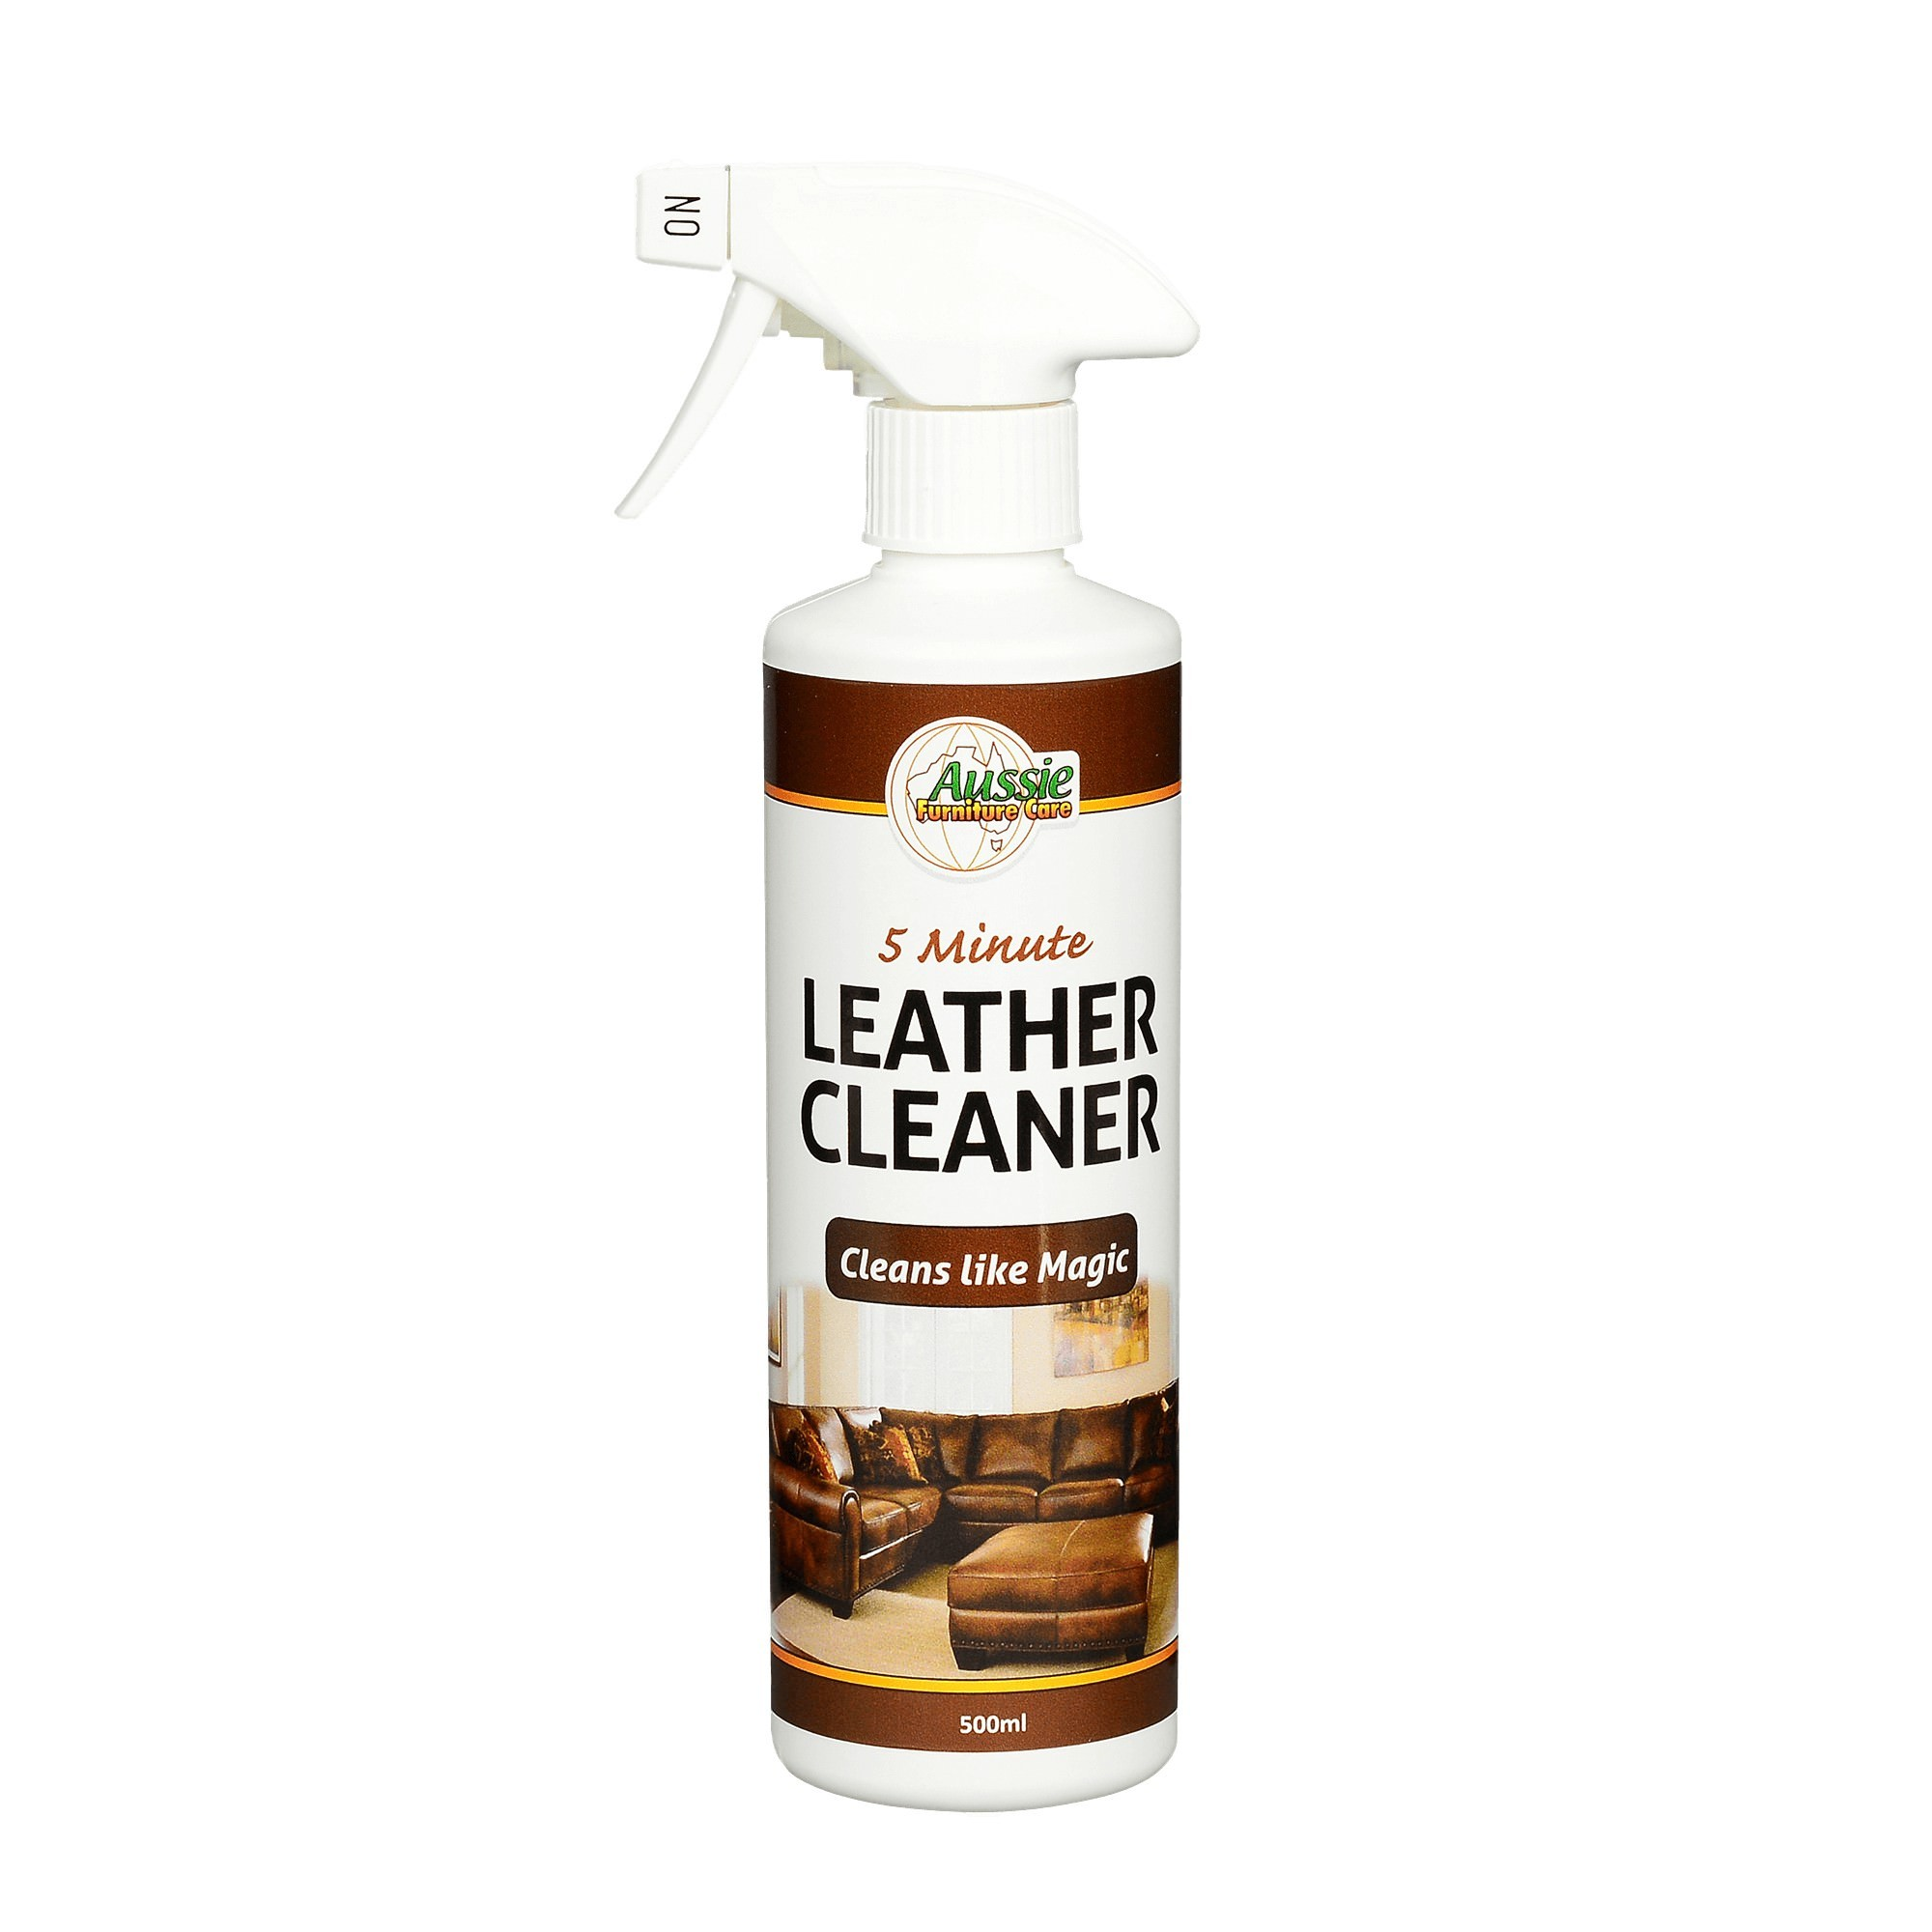 AFC 5 Minute Leather Cleaner, 500ml